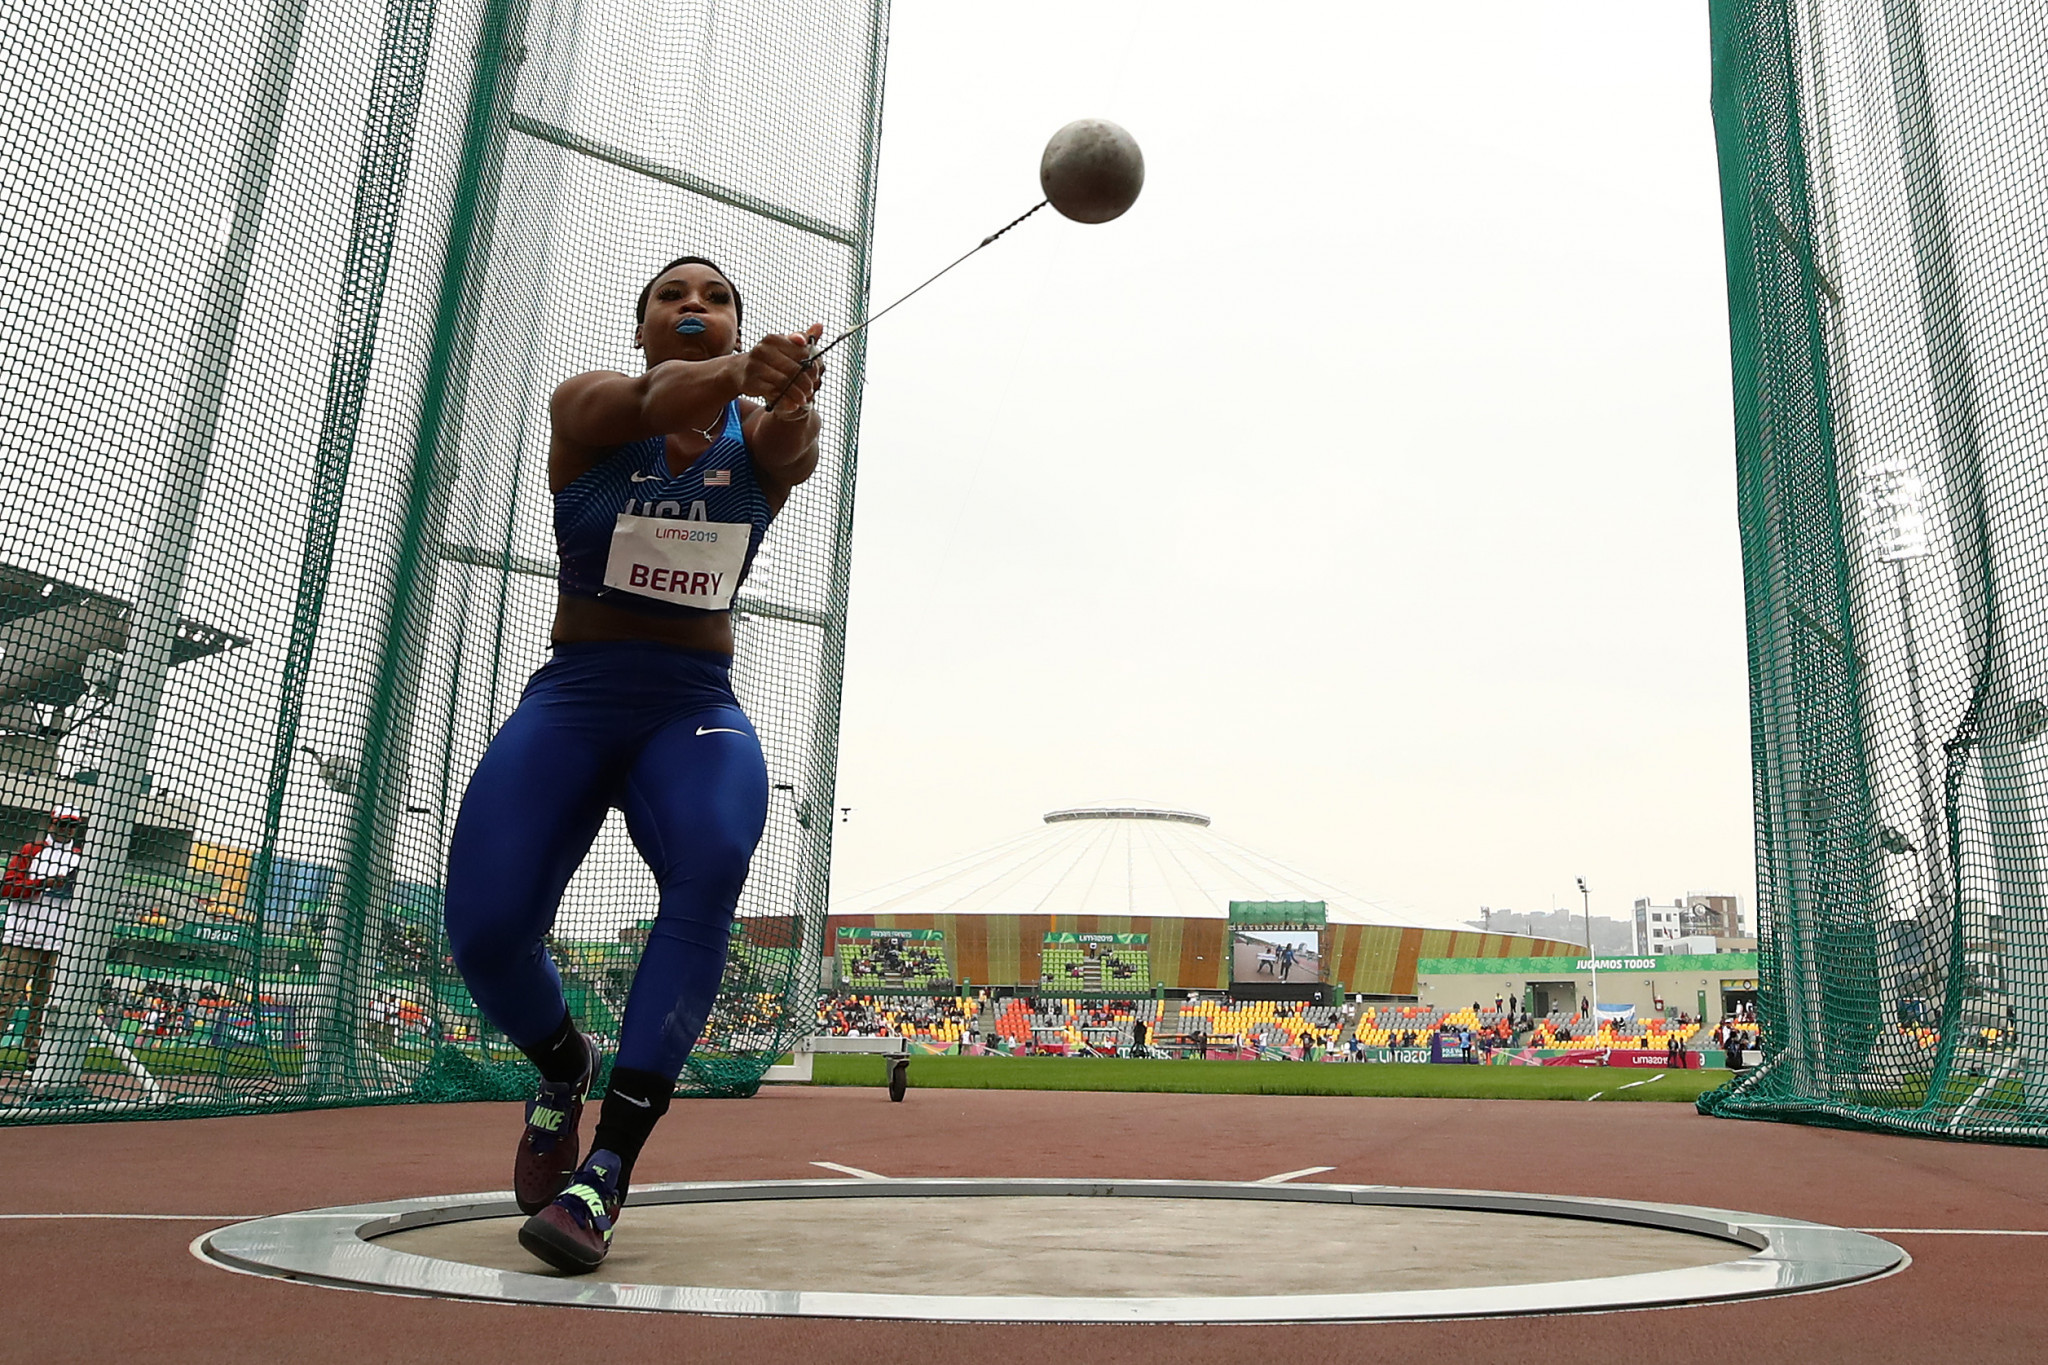 Throwing events headline Lima 2019 athletics with Berry protest and Peters record